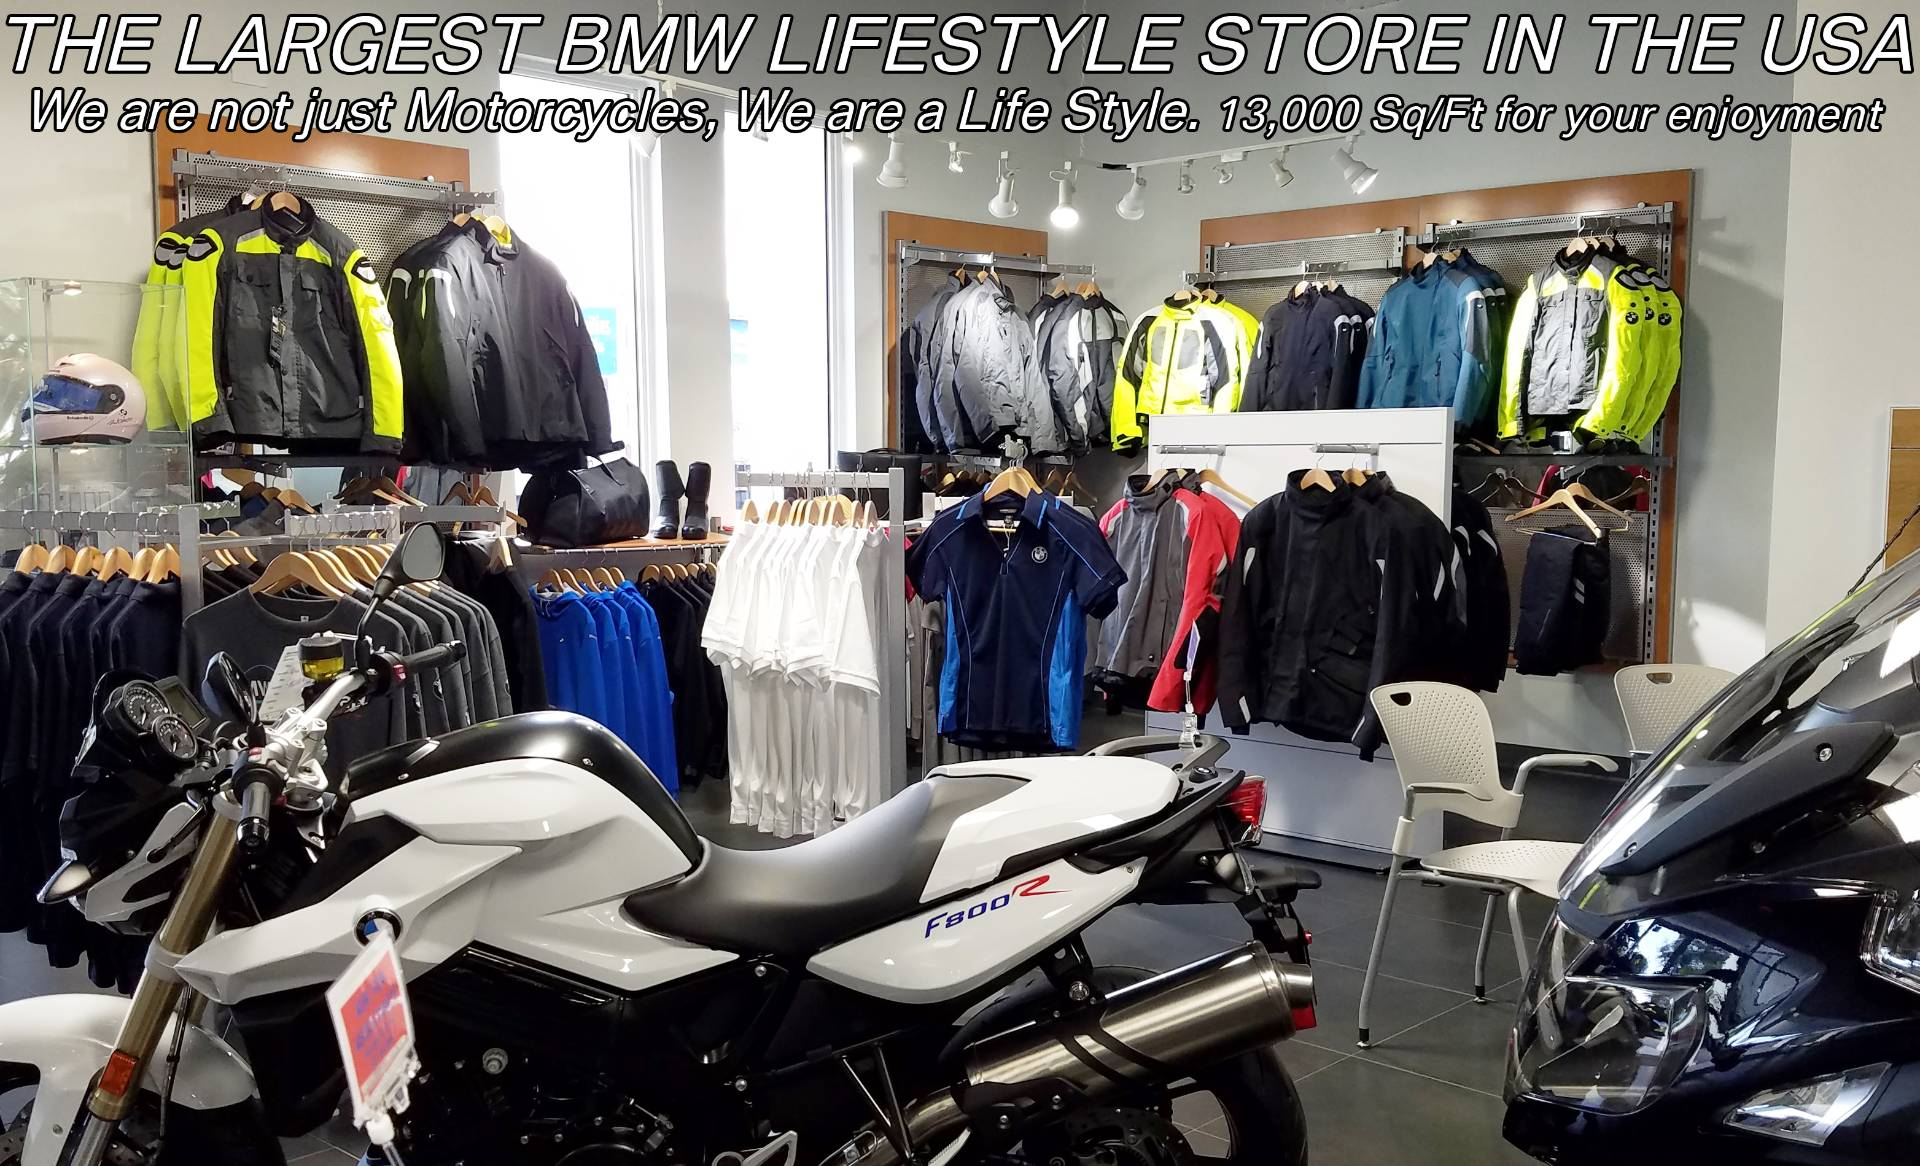 New 2019 BMW R 1250 GS for sale, New BMW R 1250GS, BMW R1250GS for sale, 1250GS, R1250GS, BMW Motorcycles of Miami, Motorcycles of Miami. Motorcycles Miami - Photo 41